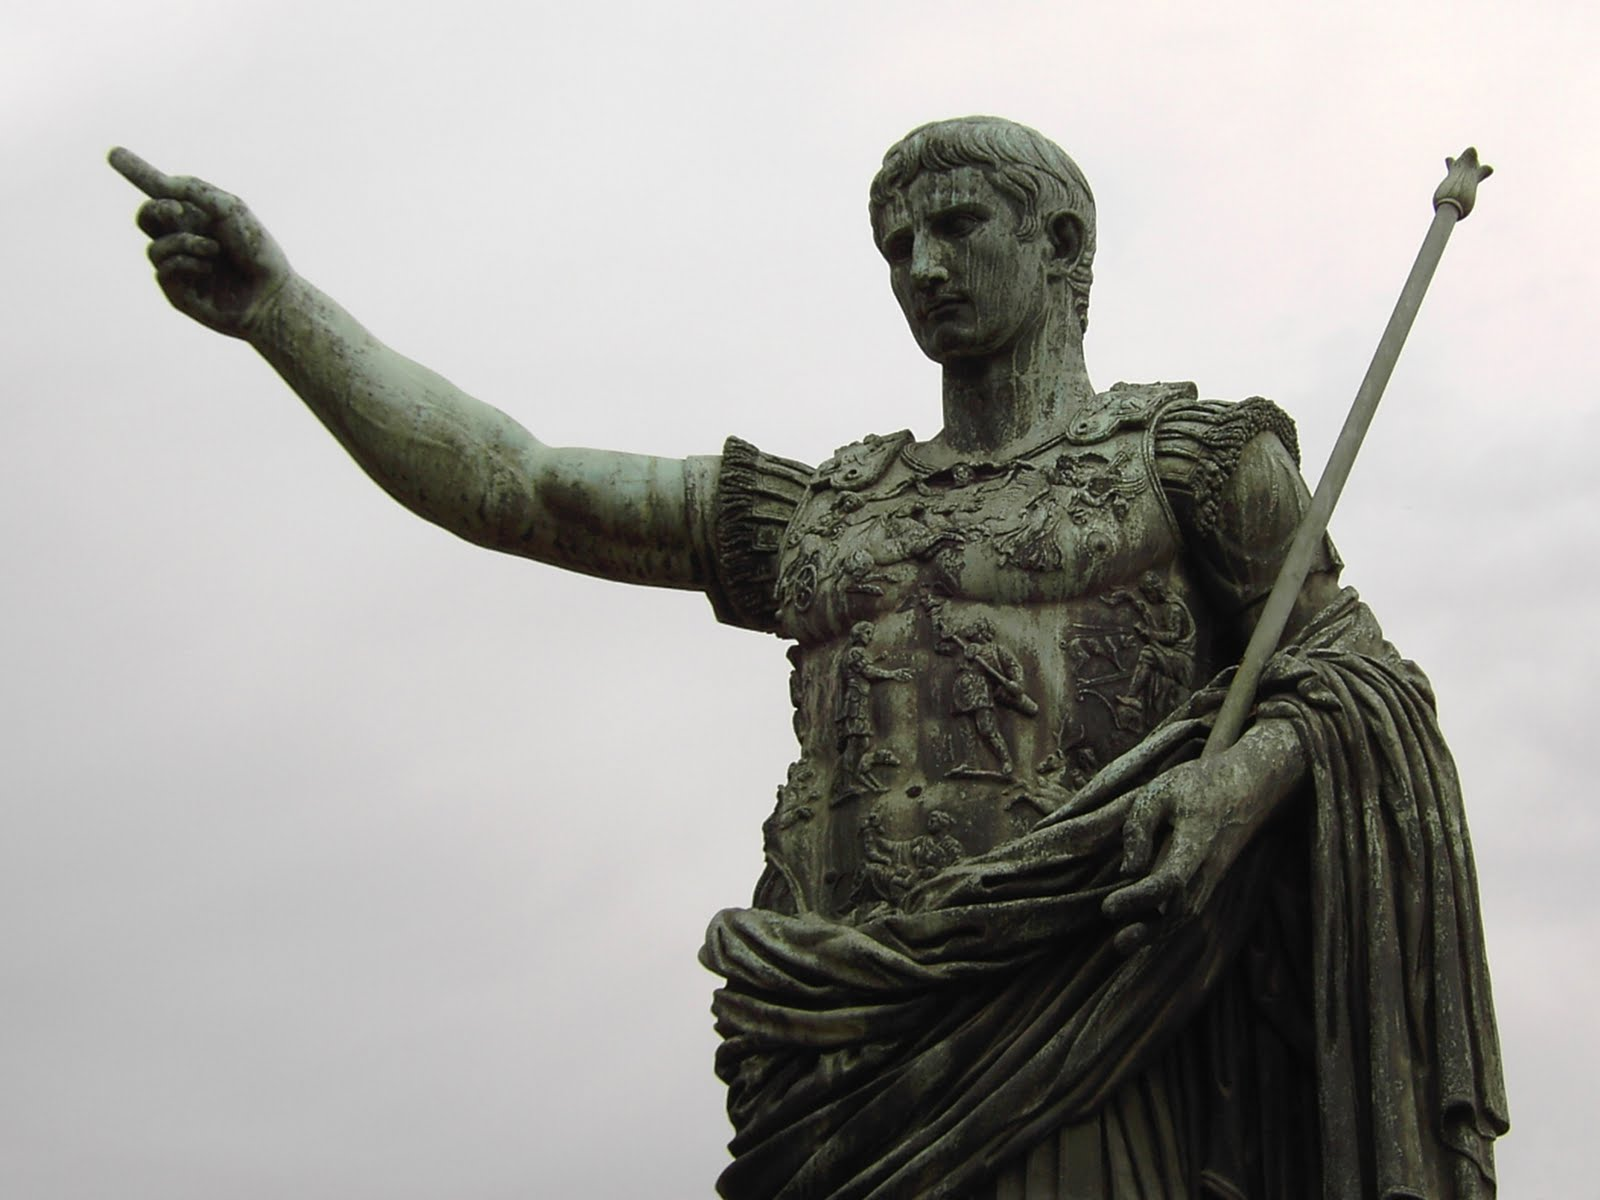 augustus caesar One major accomplishment of augustus caesar was that he restored and maintained peace in the city of rome, also known as the pax romana prior to augustus, rome was a.